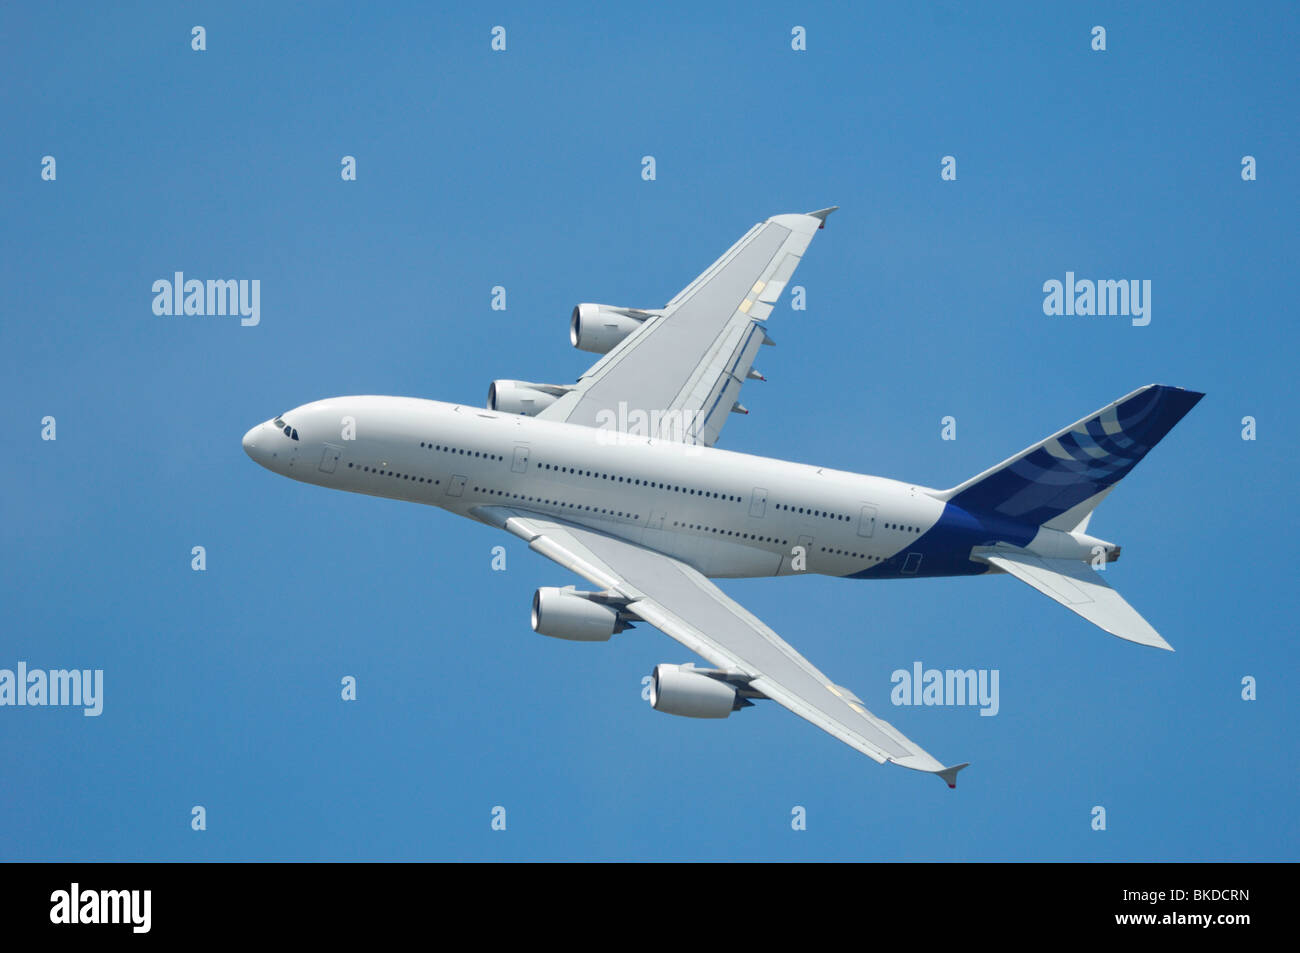 Airliner Airbus A380 flying during 48th Paris International Air show - Le Bourget airport - Stock Image